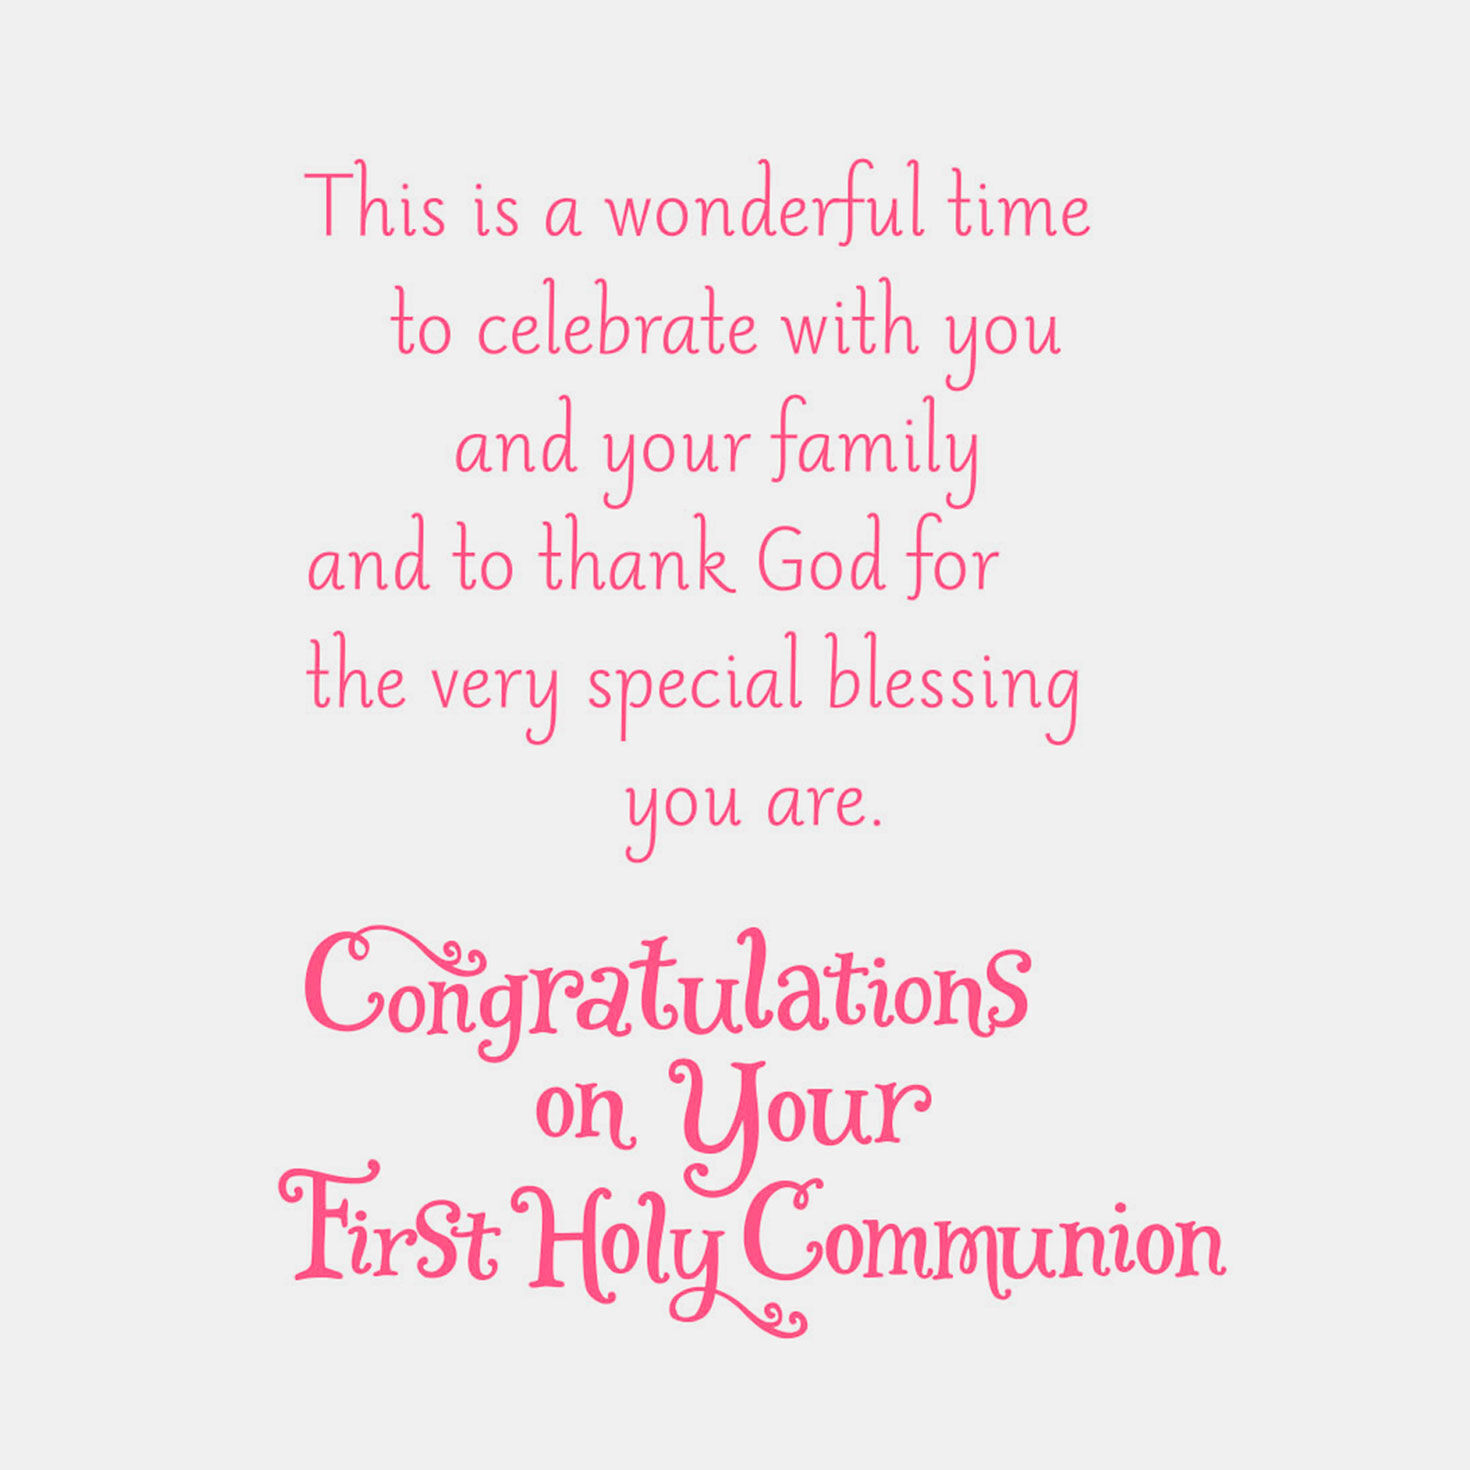 photo regarding First Holy Communion Cards Printable Free identify Kids at Church Initial Communion Card for Granddaughter